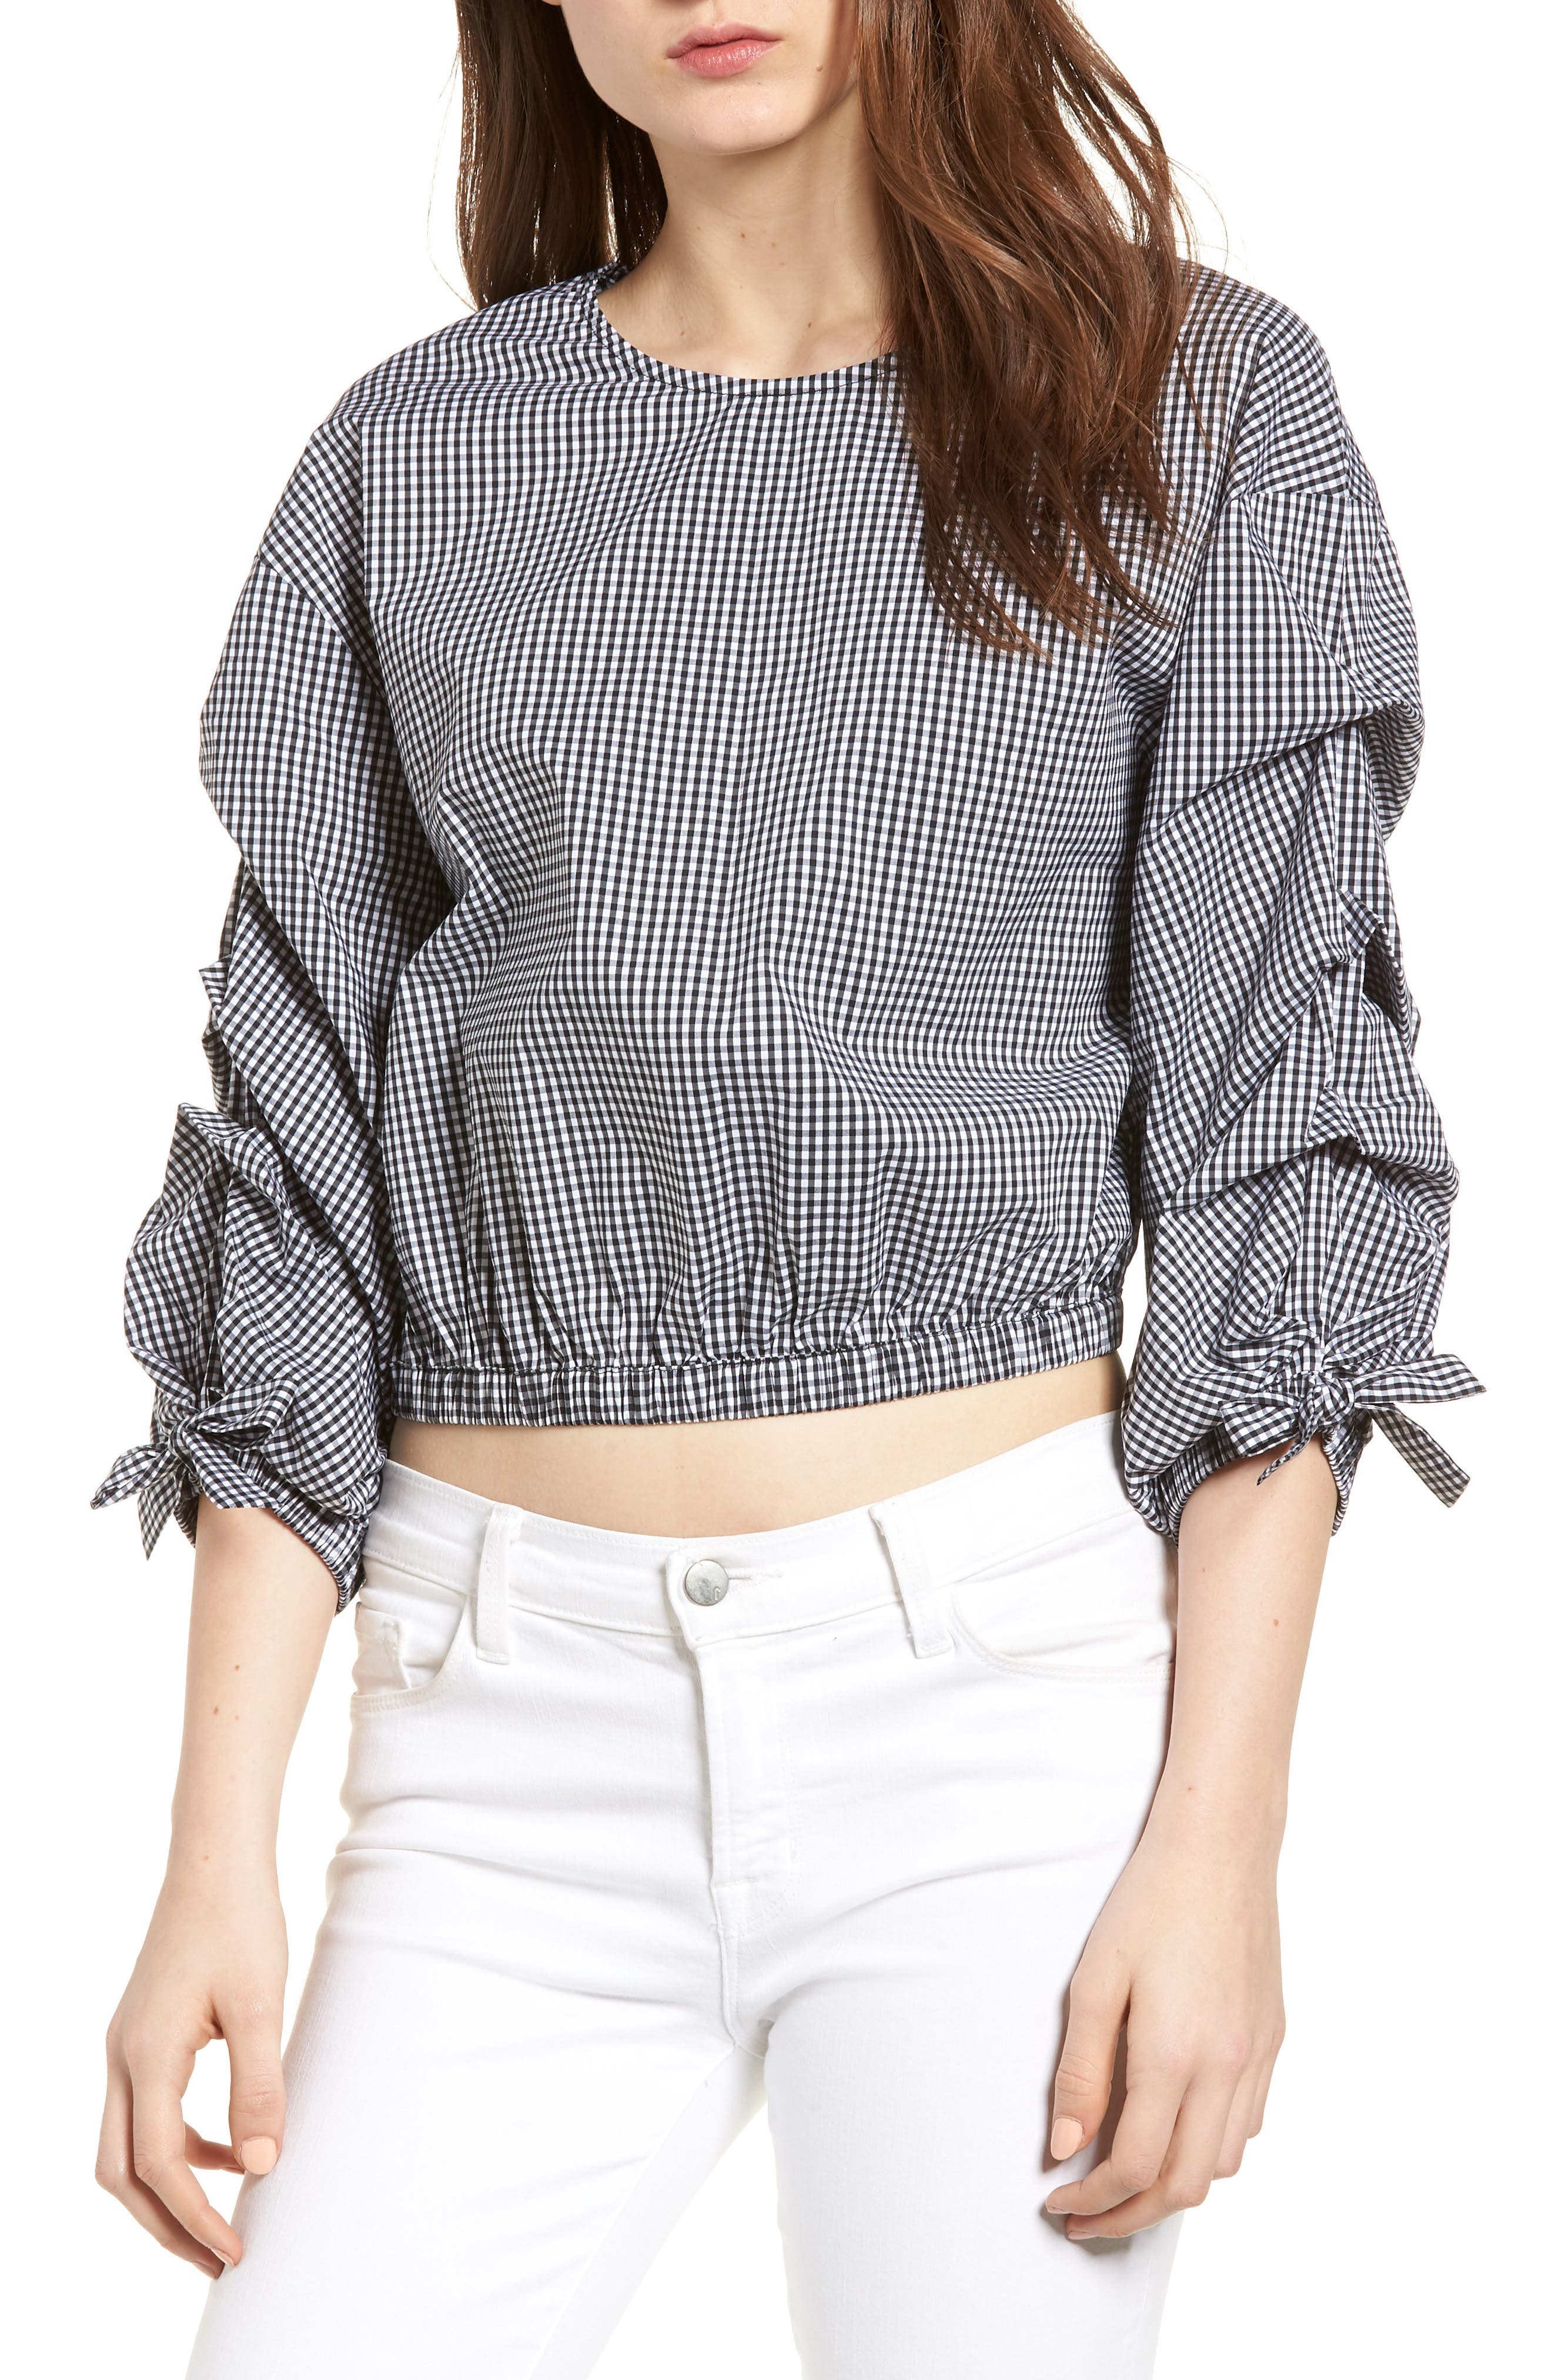 Bishop + Young Ruched Sleeve Blouse,                             Main thumbnail 1, color,                             Gingham